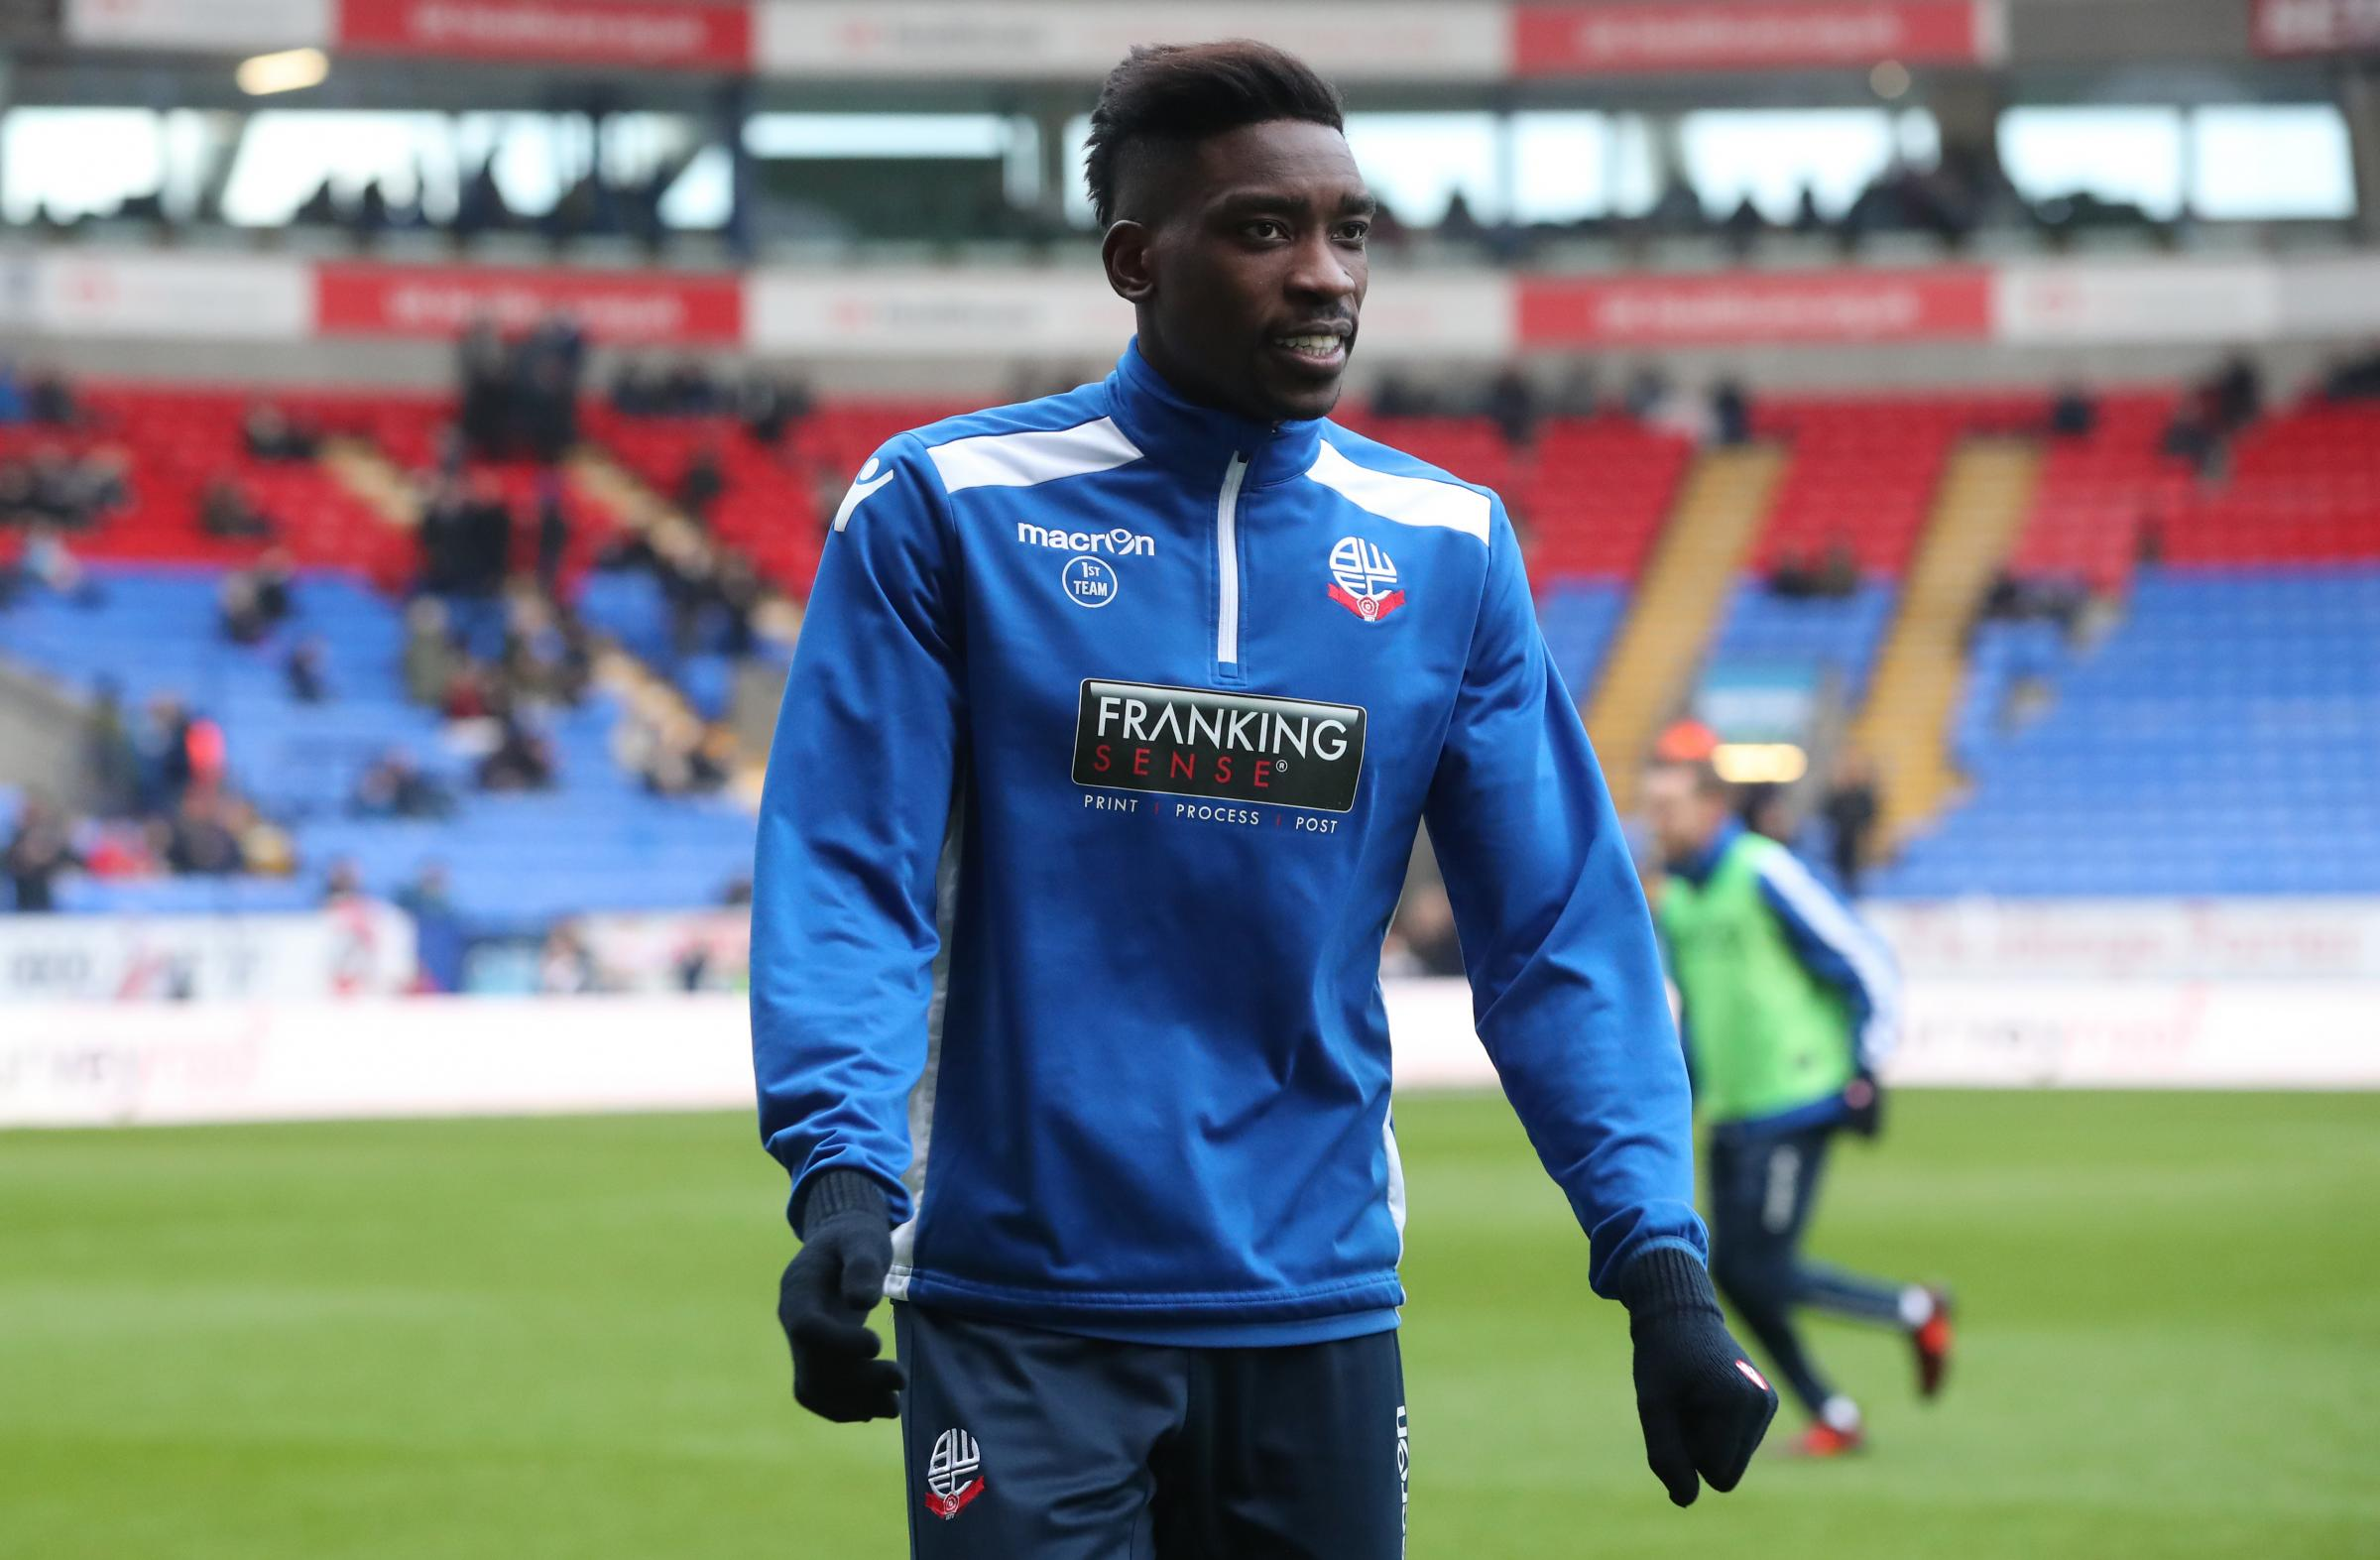 Sammy Ameobi has pledged his international future to Nigeria despite playing for England Under-21s